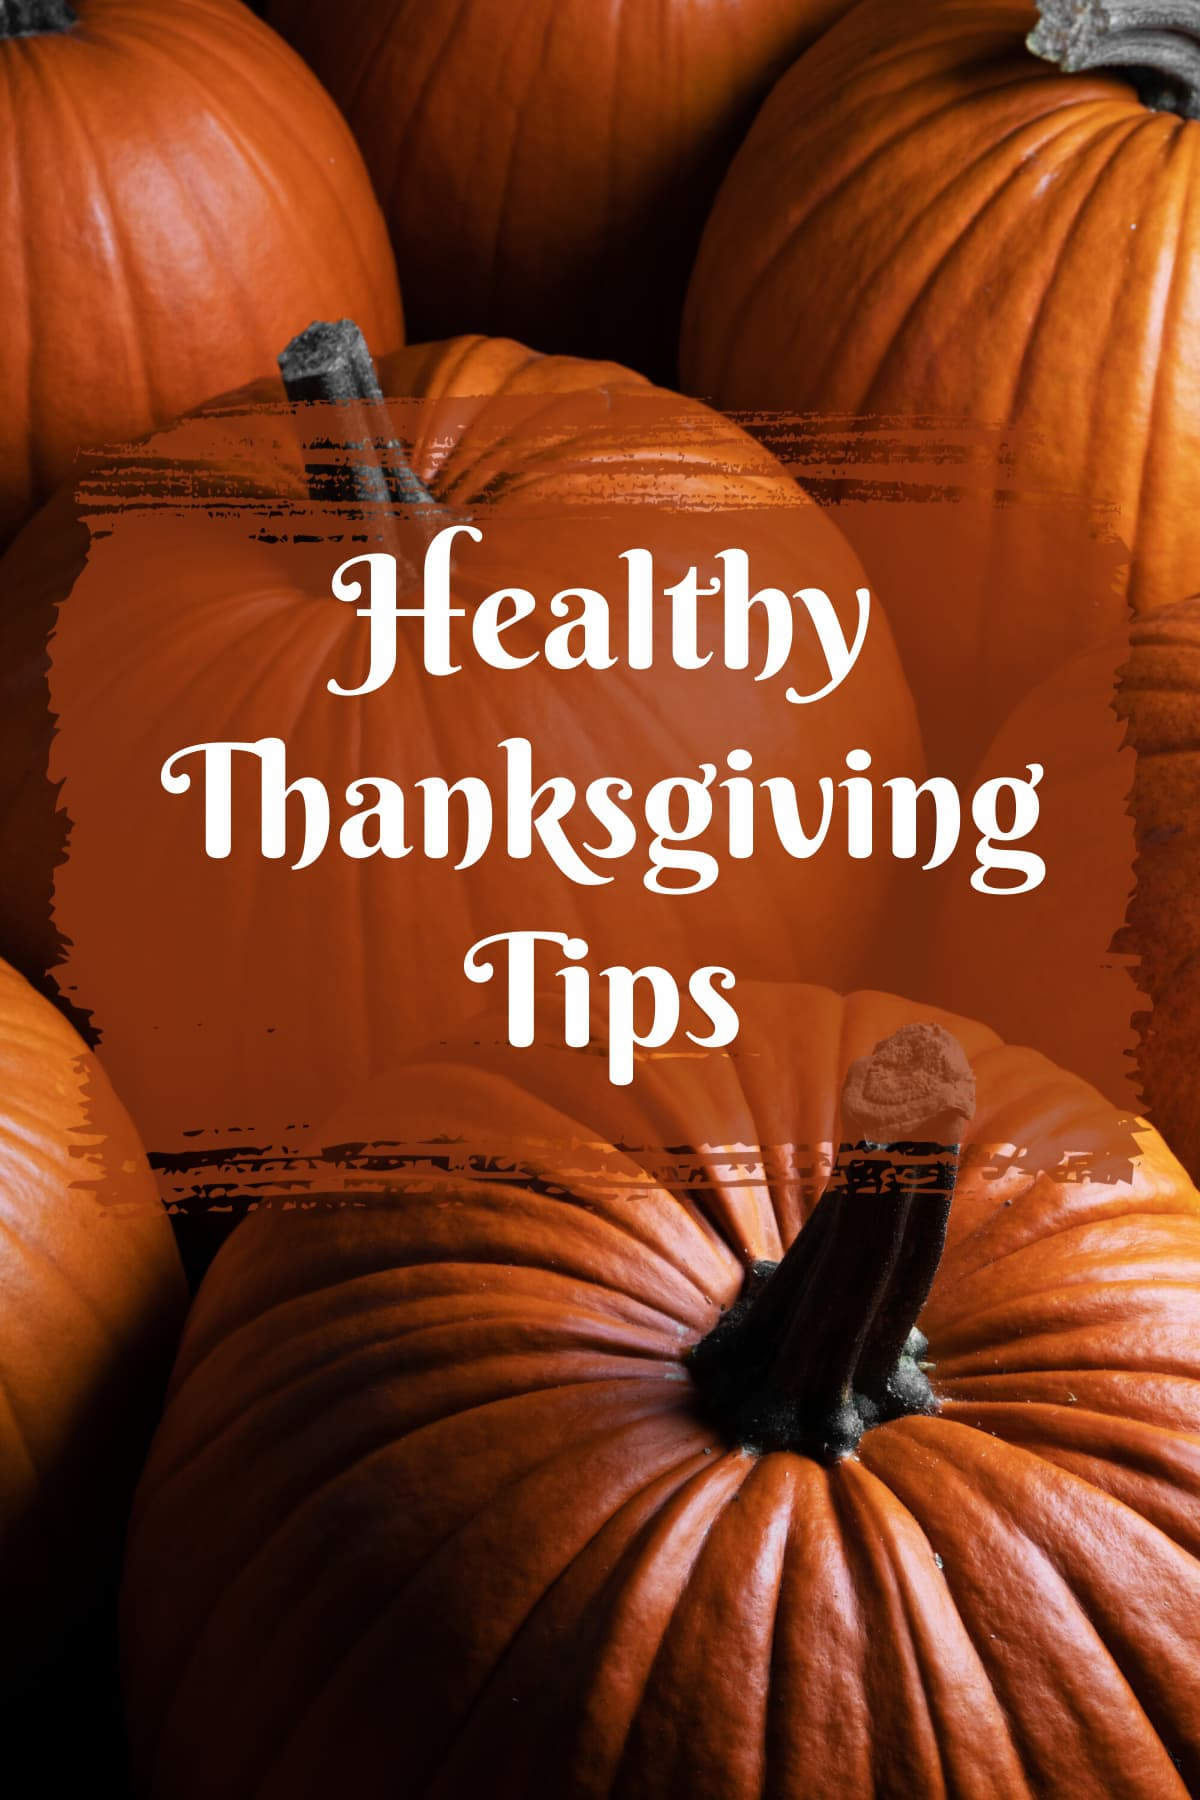 8 Healthy Thanksgiving Tips Today!